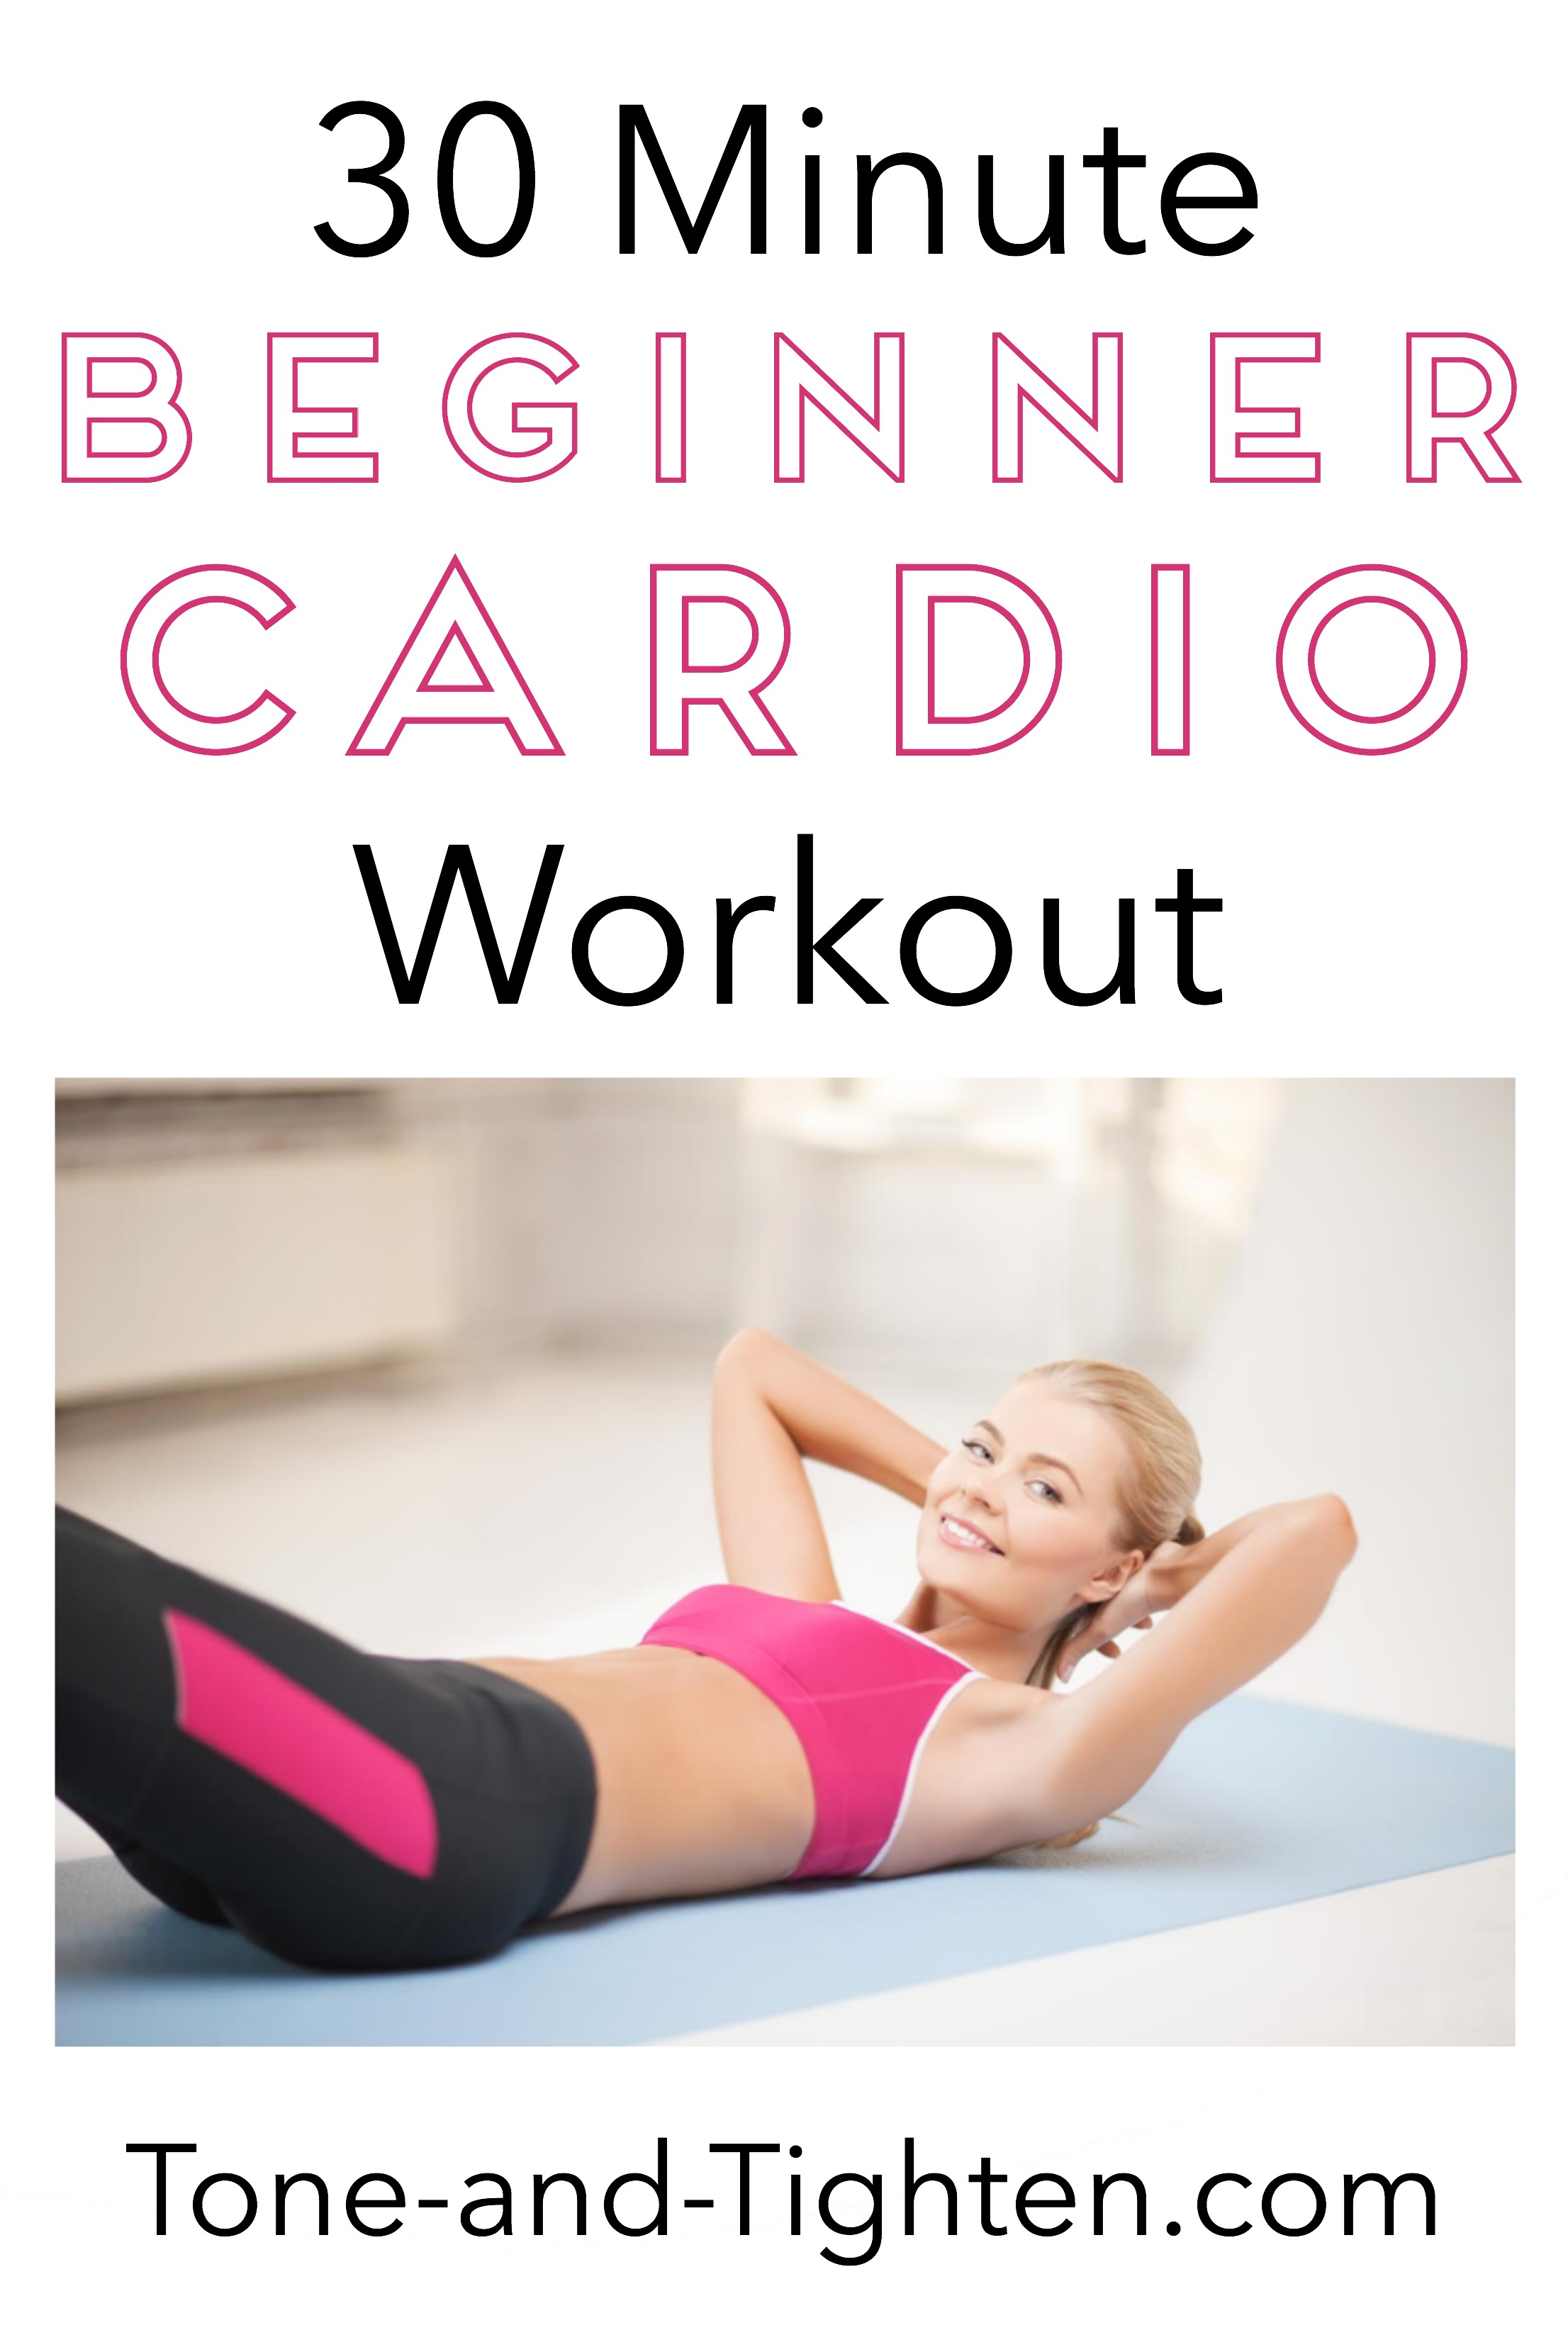 Beginner 30 Minute At Home Cardio Workout